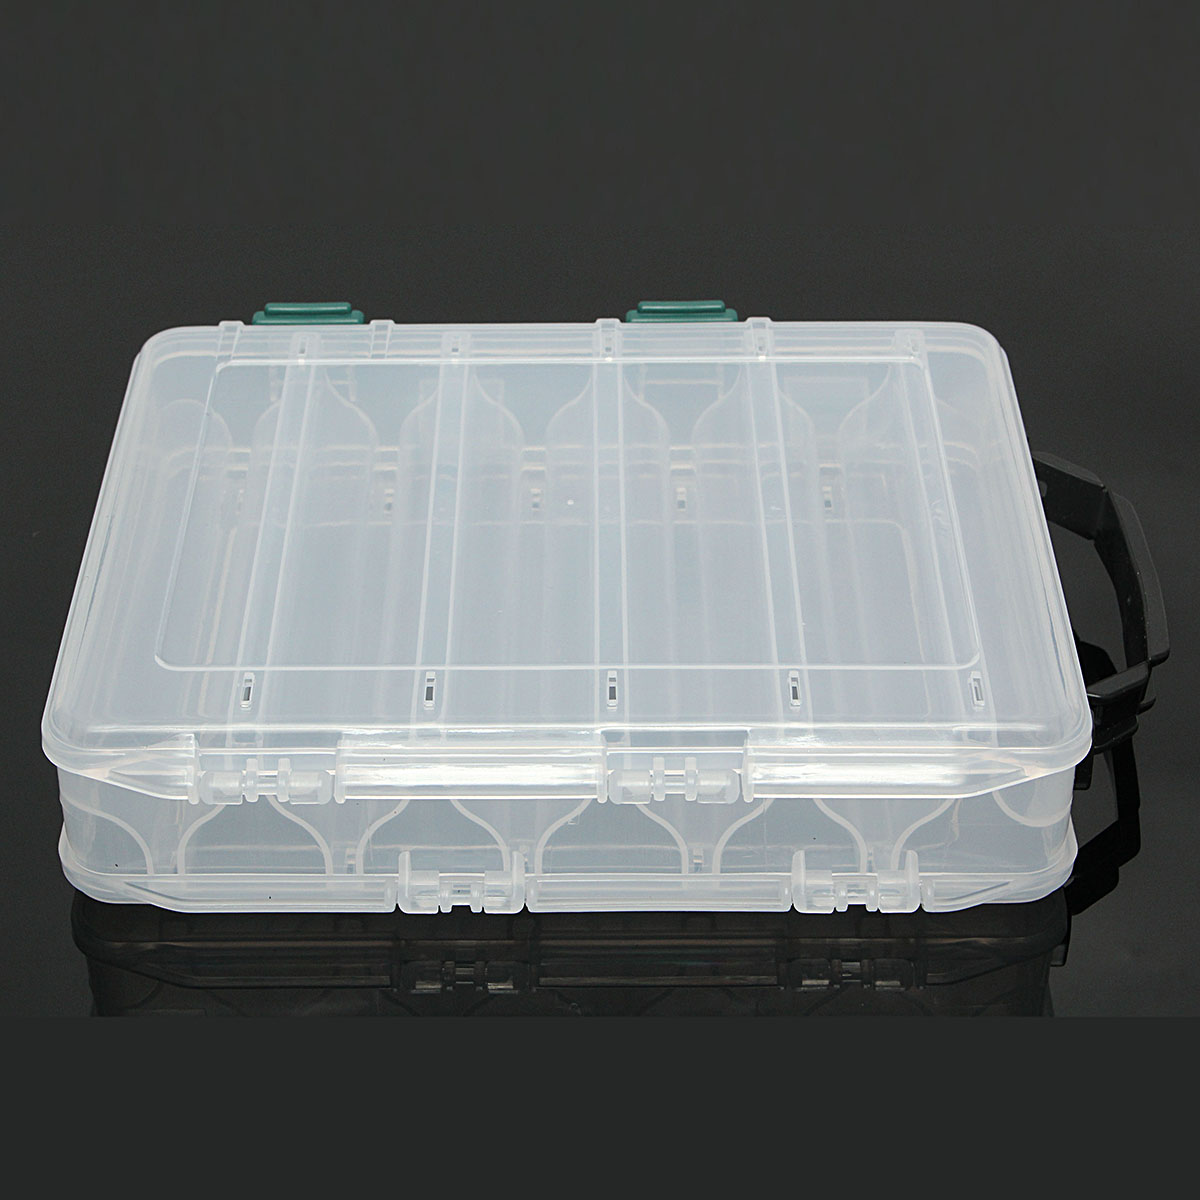 Plastic 12 Compartment Double Sided Fishing Lure Bait Tackle Hook Accessory Storge Box Case